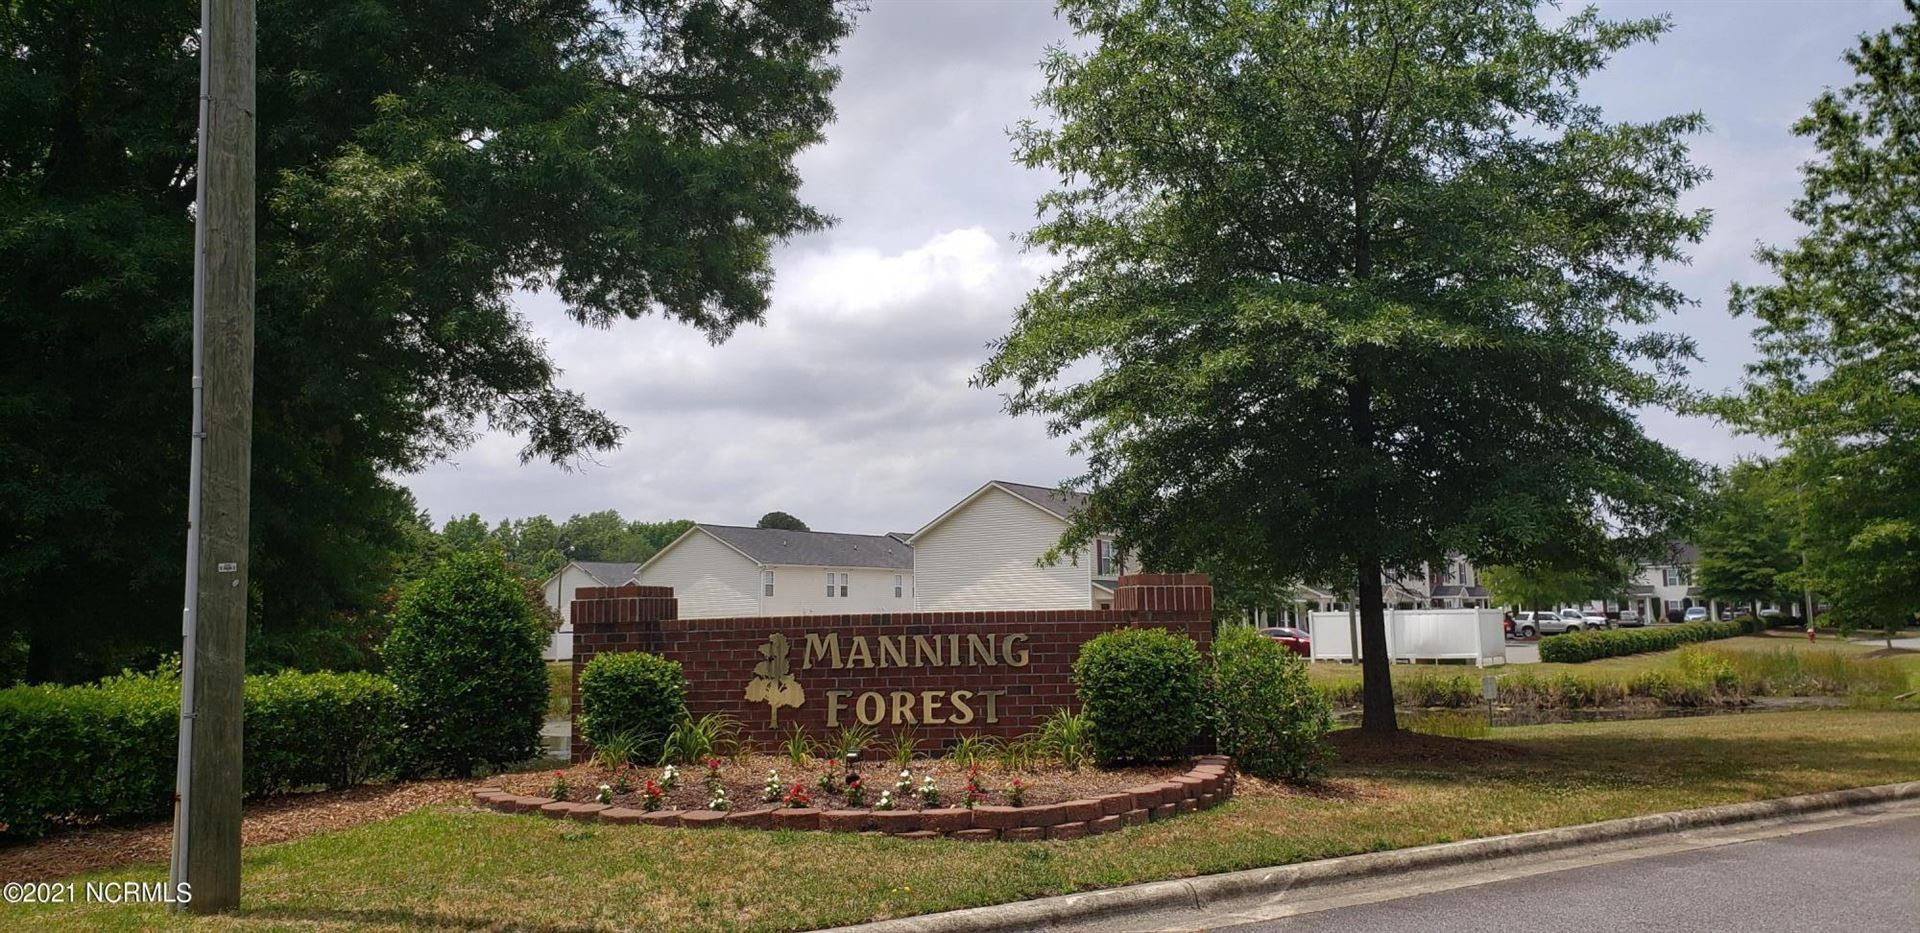 1500 Manning Forest Drive #A3, Greenville, NC 27834 - #: 100273701